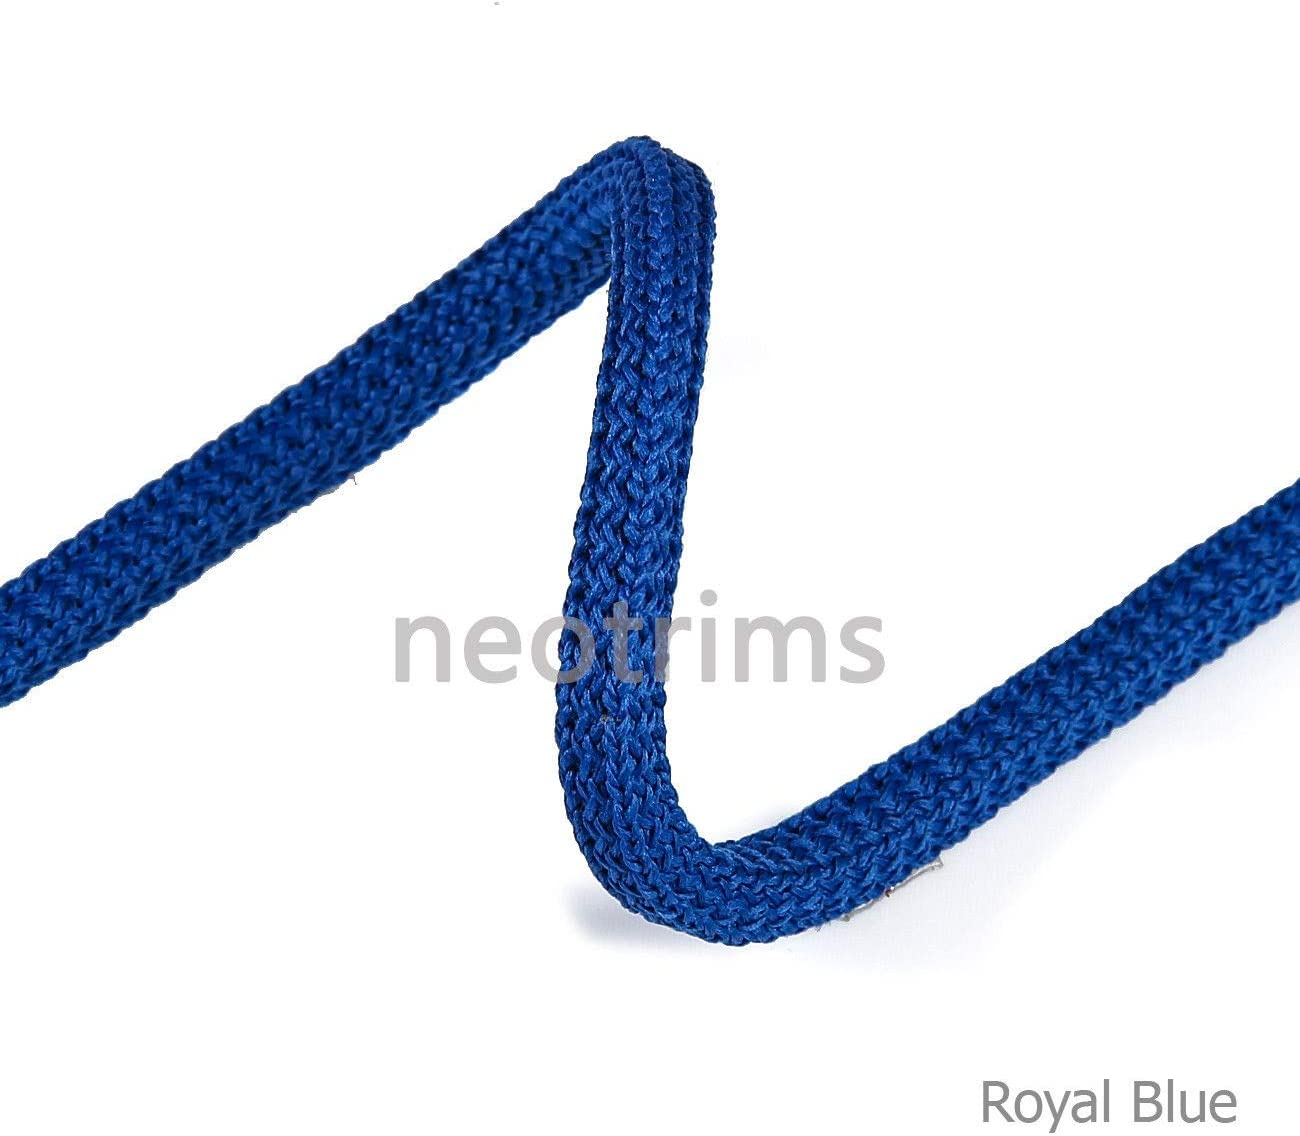 21 Colours 6mm Cushion Piping Padded Square i Cord Texture,Hoody Trimming,Sweatshirts,Garments,Apparel Crafts Strong,Slight Stretch,Soft Handle,Neotrims Drawstring Hoodie Braided Cord Rope Trim